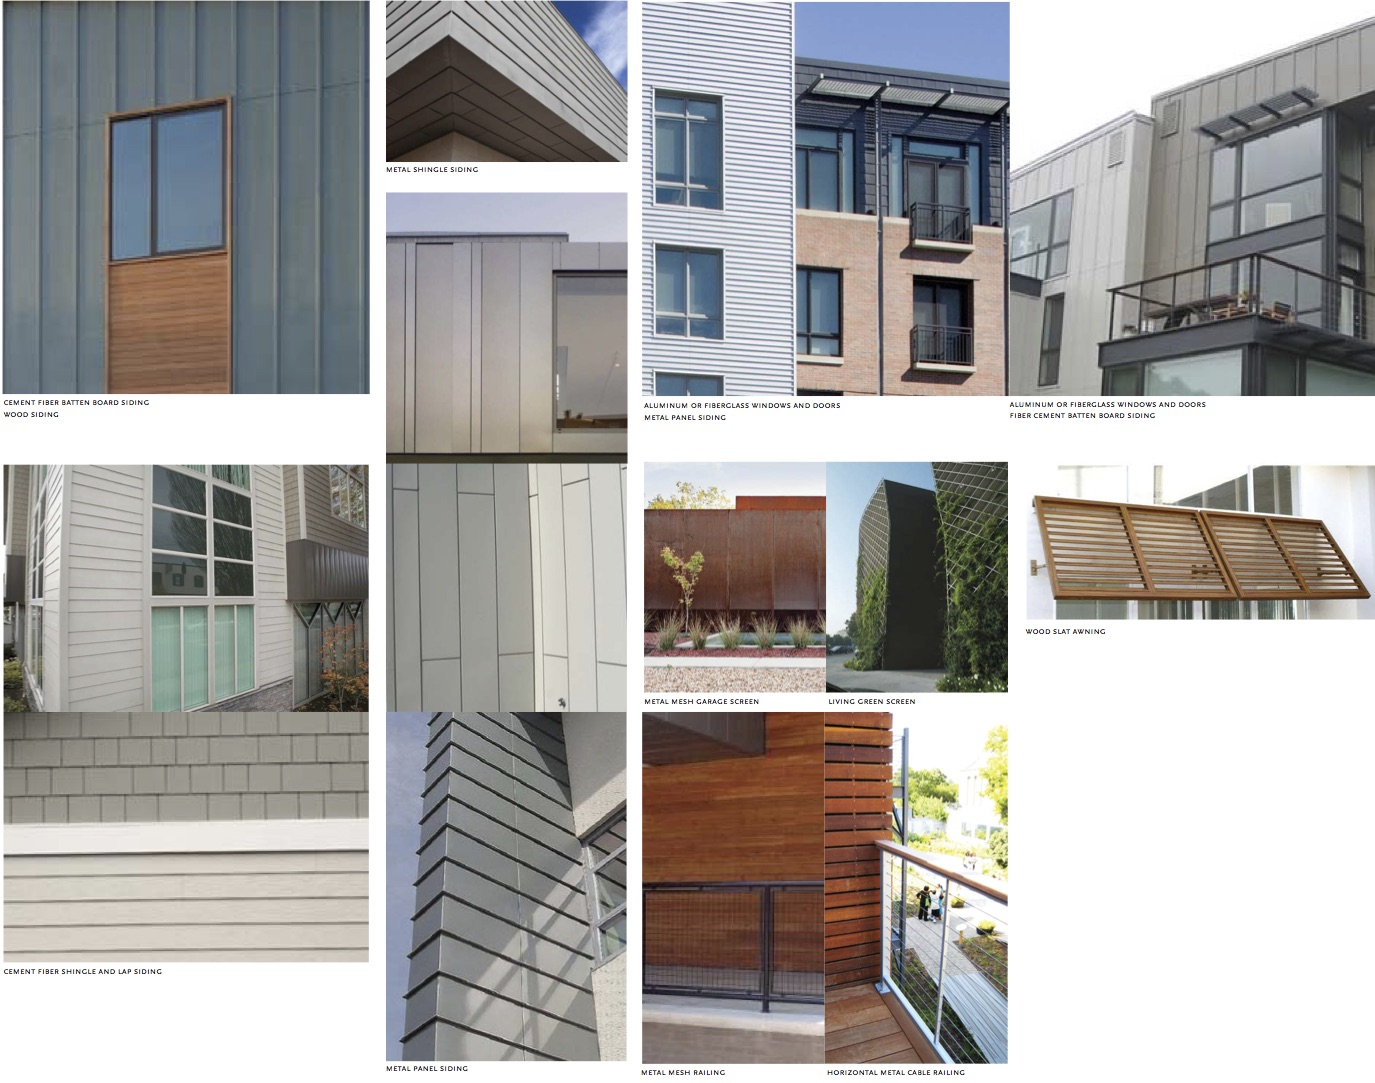 Sample Architectural Materials